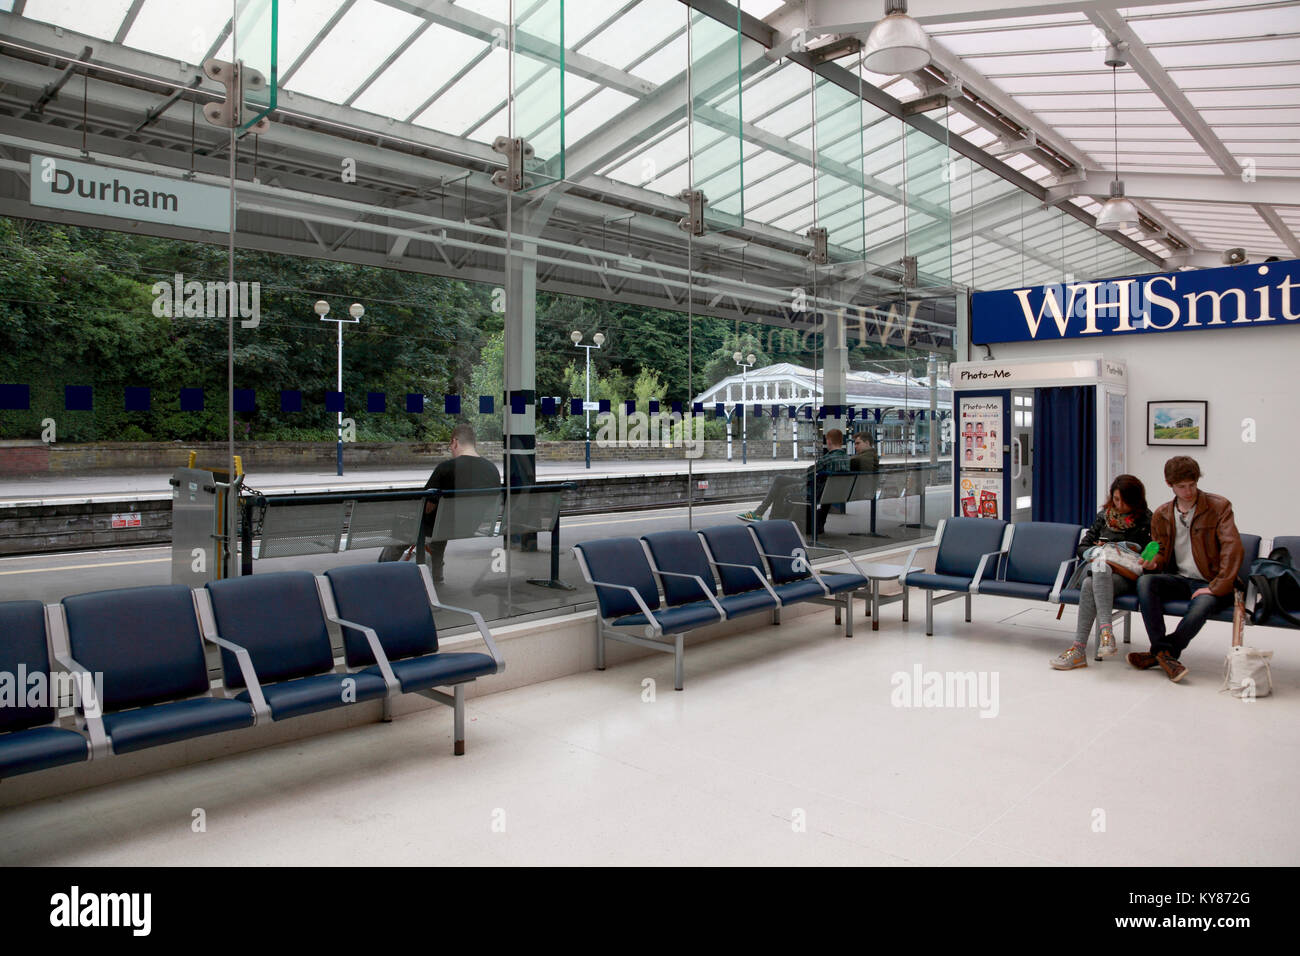 Durham railway station stock photos durham railway station stock images alamy - Virgin trains head office contact ...